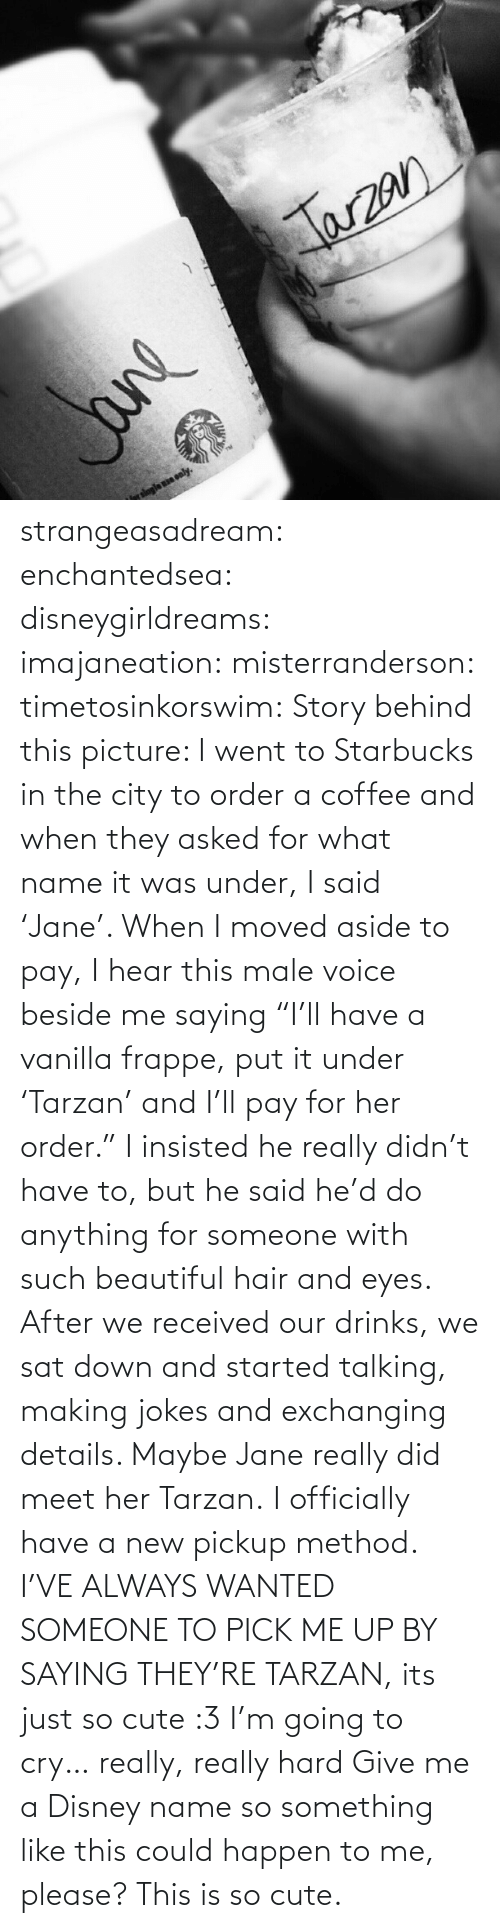 """frappe: Jarzan  logle ne only.  Jane strangeasadream:  enchantedsea:  disneygirldreams:  imajaneation:  misterranderson:  timetosinkorswim:  Story behind this picture: I went to Starbucks in the city to order a coffee and when they asked for what name it was under, I said 'Jane'. When I moved aside to pay, I hear this male voice beside me saying """"I'll have a vanillafrappe,put it under 'Tarzan' and I'll pay for her order."""" I insisted he really didn't have to, but he said he'd do anything for someone with such beautiful hair and eyes. After we received our drinks, we sat down and started talking, making jokes and exchanging details. Maybe Jane really did meet her Tarzan.  I officially have a new pickup method.  I'VE ALWAYS WANTED SOMEONE TO PICK ME UP BY SAYING THEY'RE TARZAN, its just so cute :3  I'm going to cry… really, really hard  Give me a Disney name so something like this could happen to me, please?  This is so cute."""